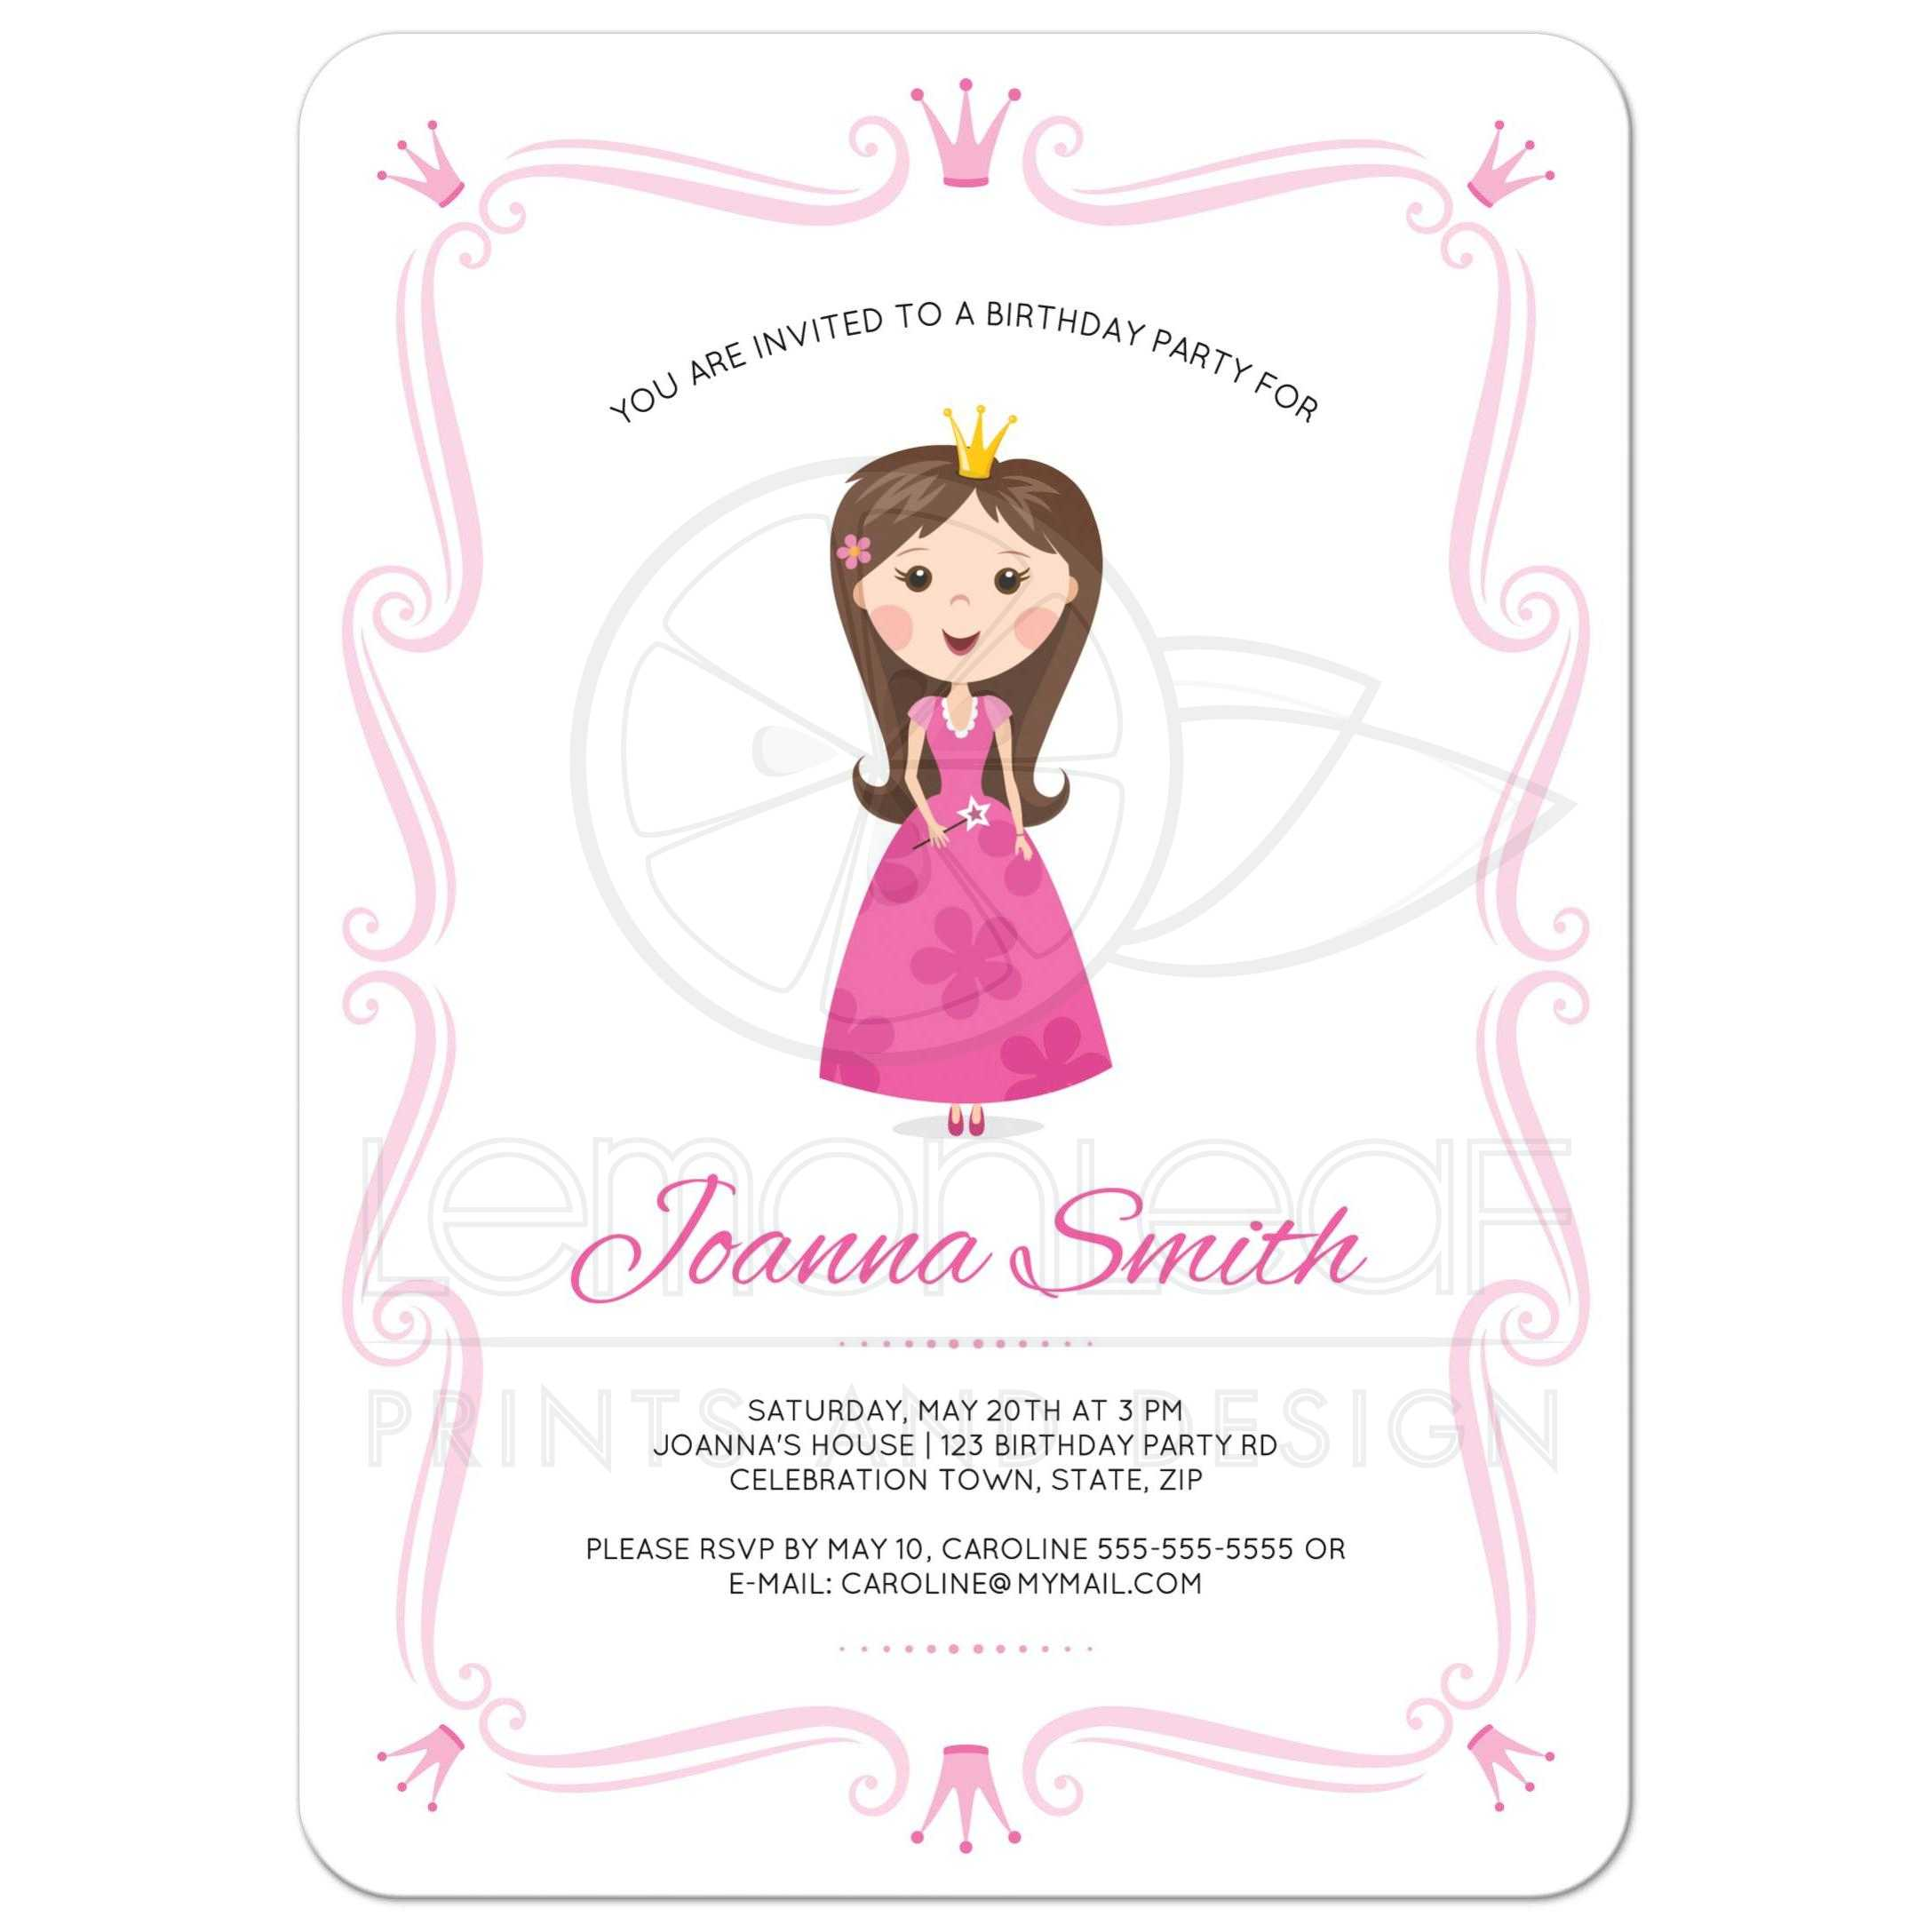 Princess birthday party invitation with pink crowns and elegant ...